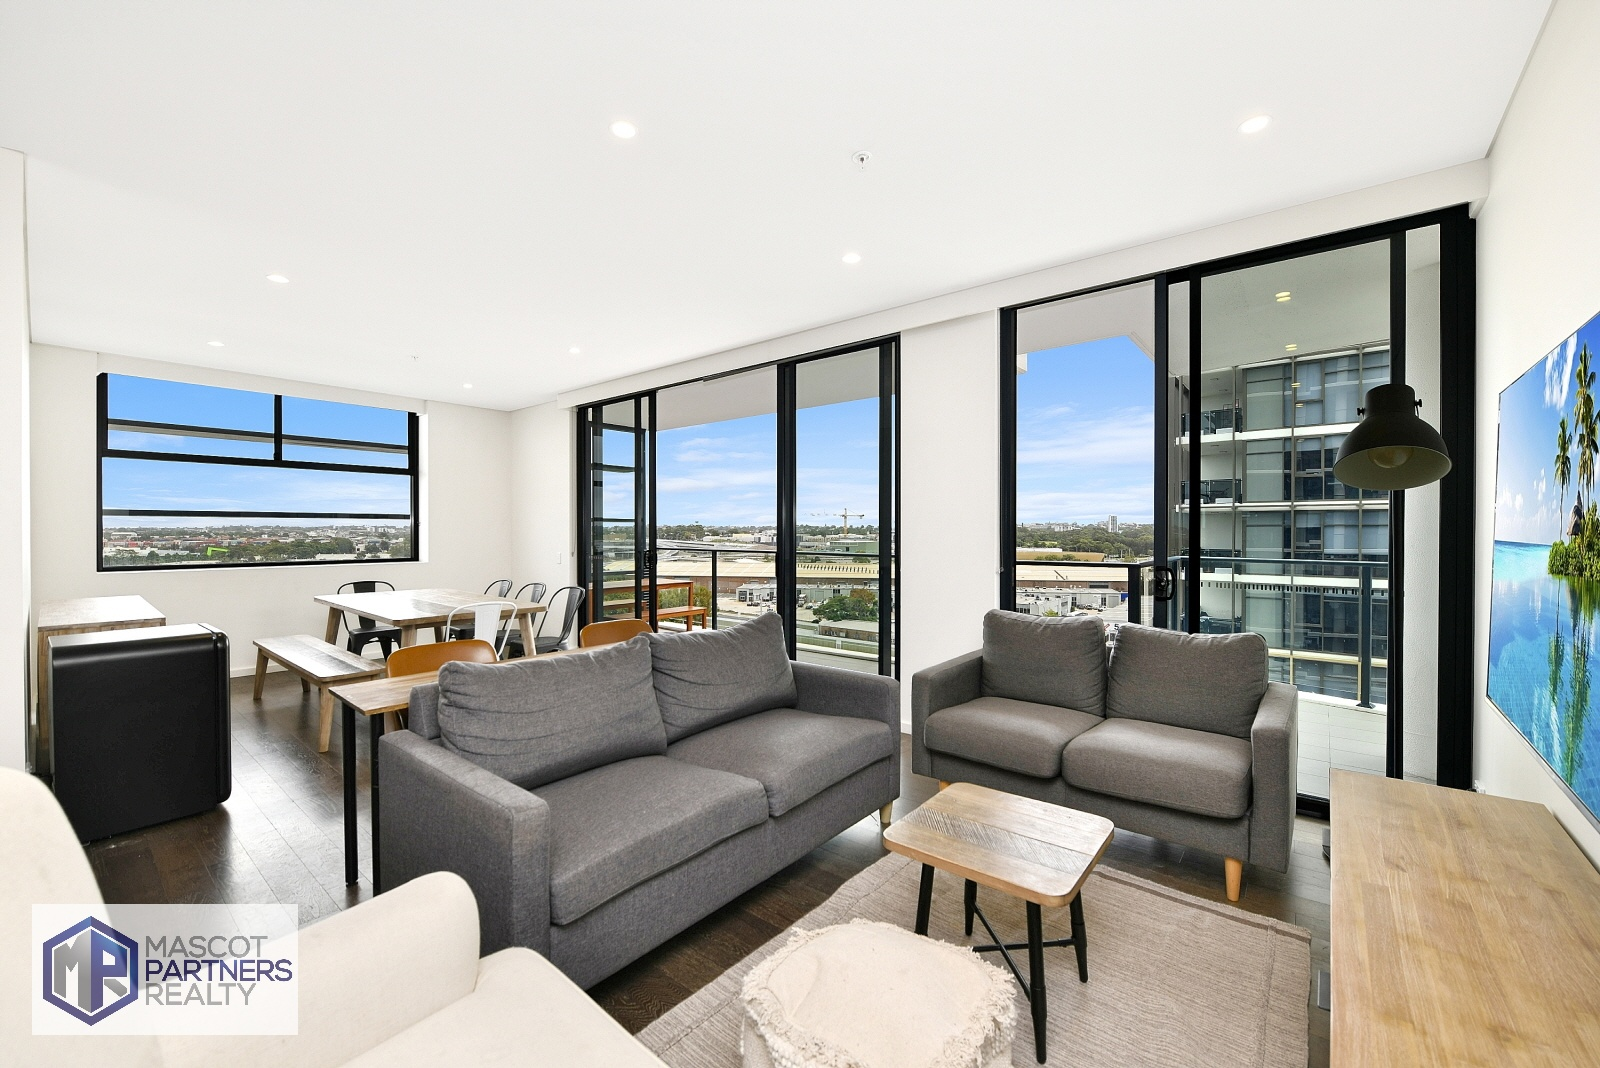 803A/9 KENT ROAD, MASCOT NSW 2020 (LEASED)